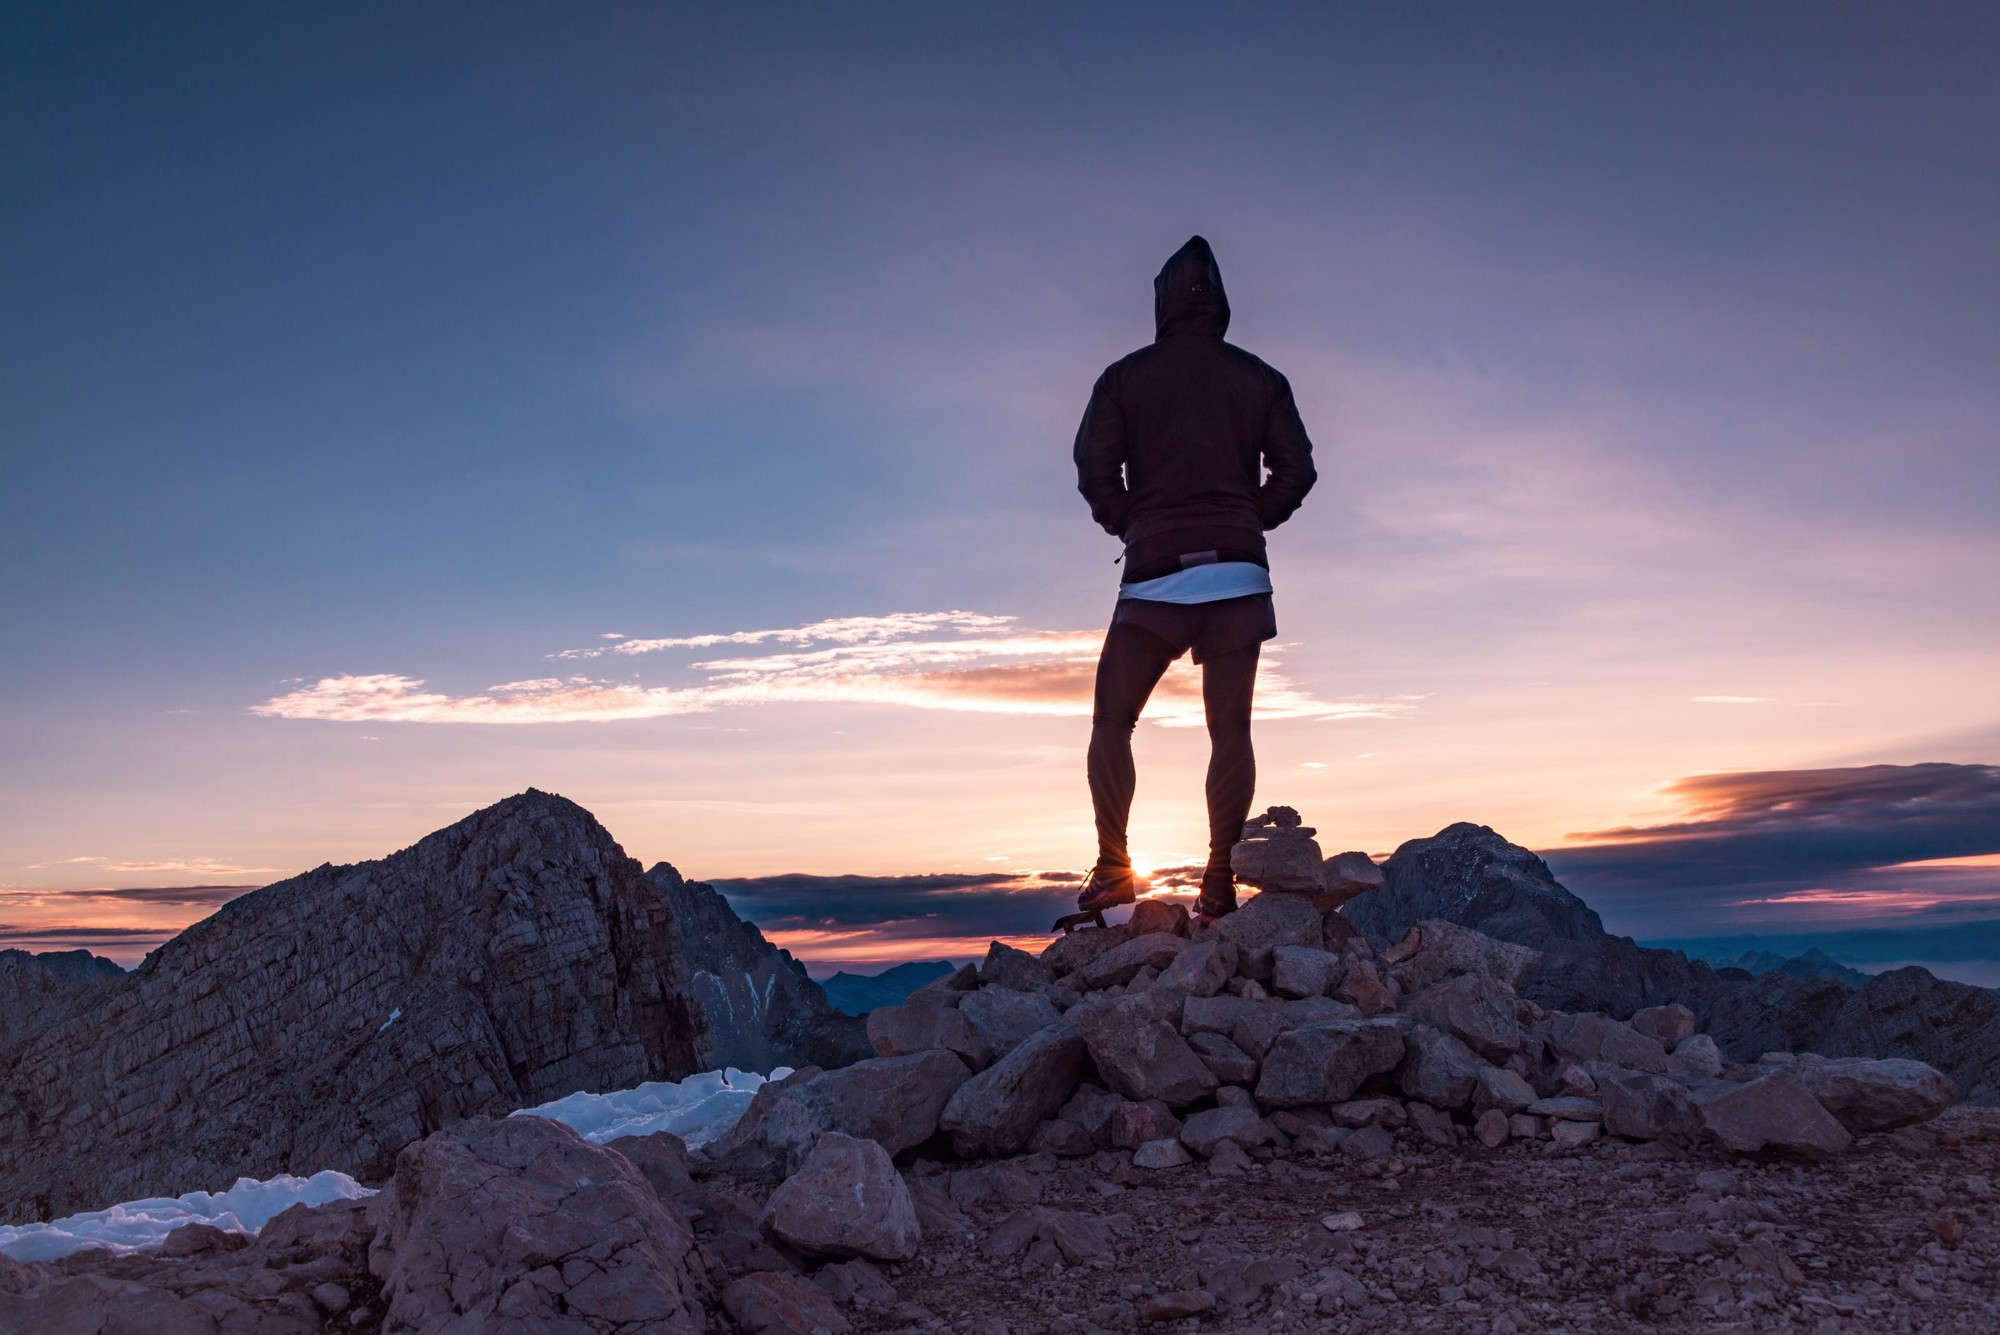 A person looking at the sunset while on a mountain.